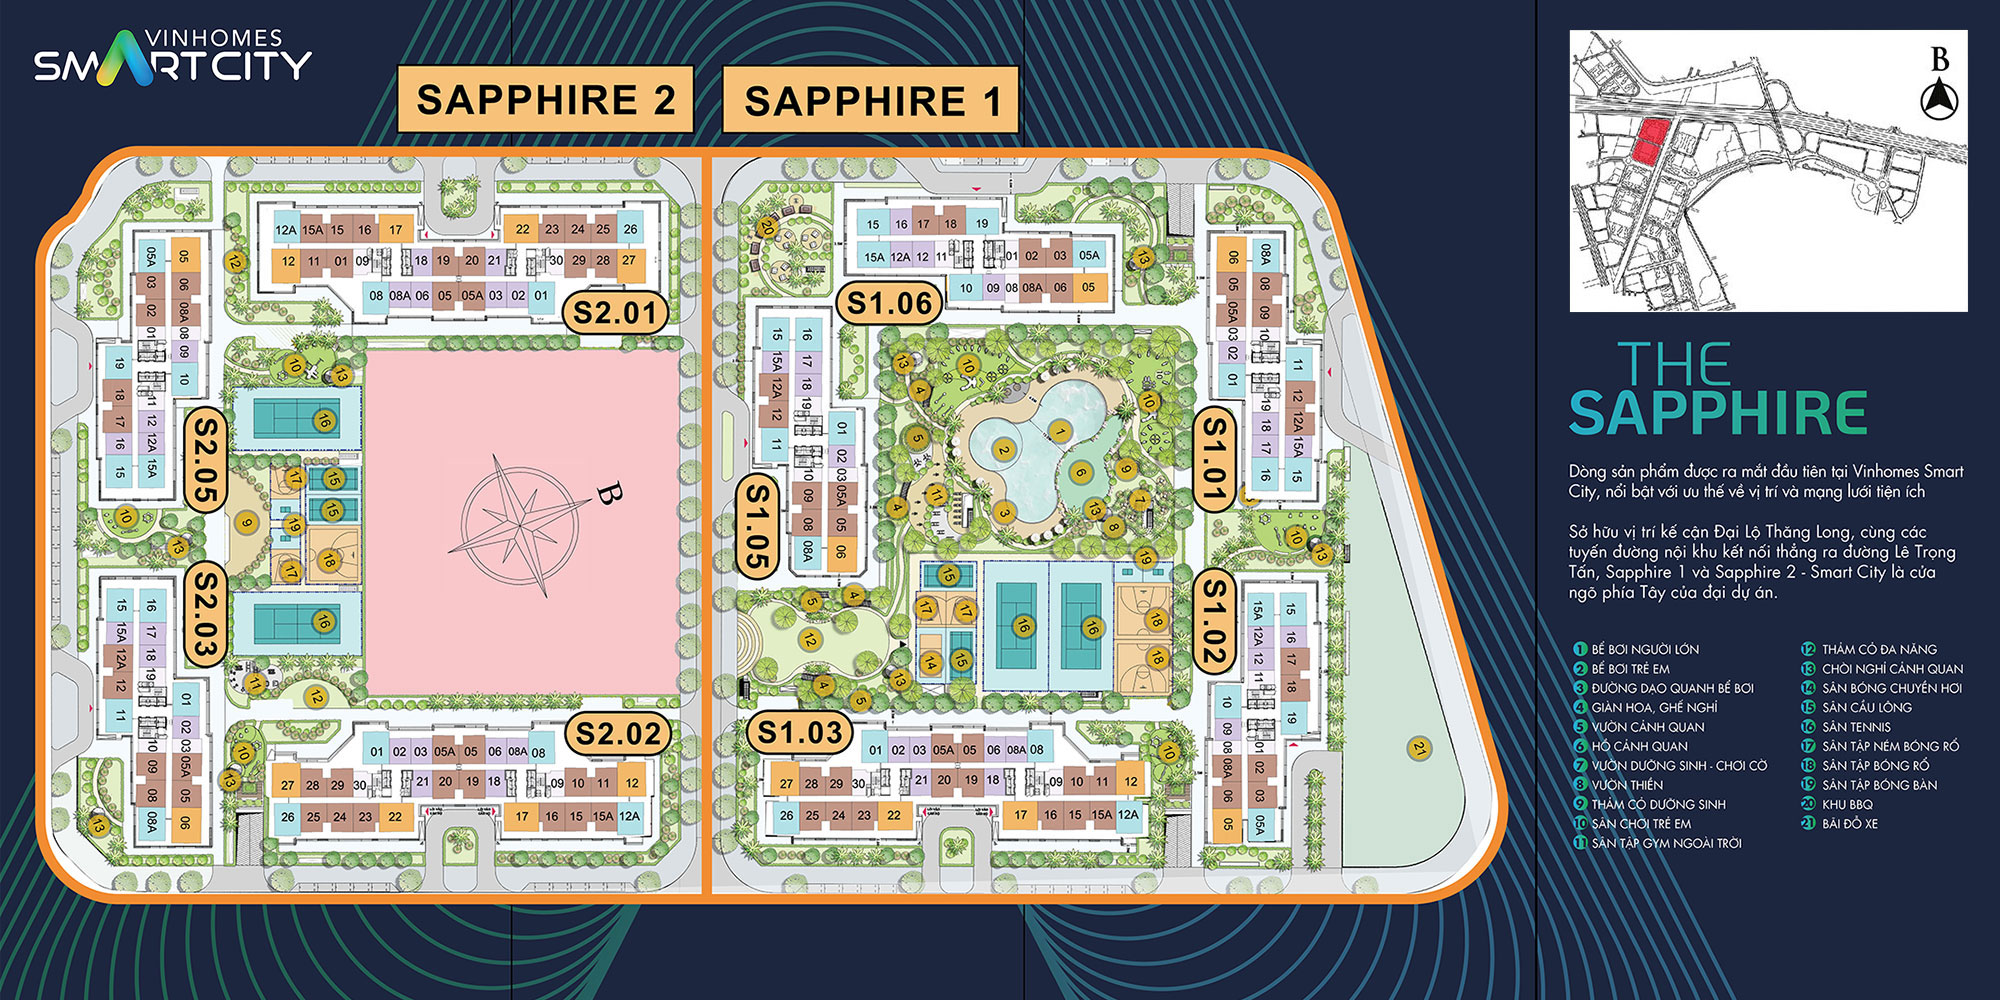 mat-bang-phan-khu-the-sapphire-1-the-sapphire-2-vinhomes-smart-city